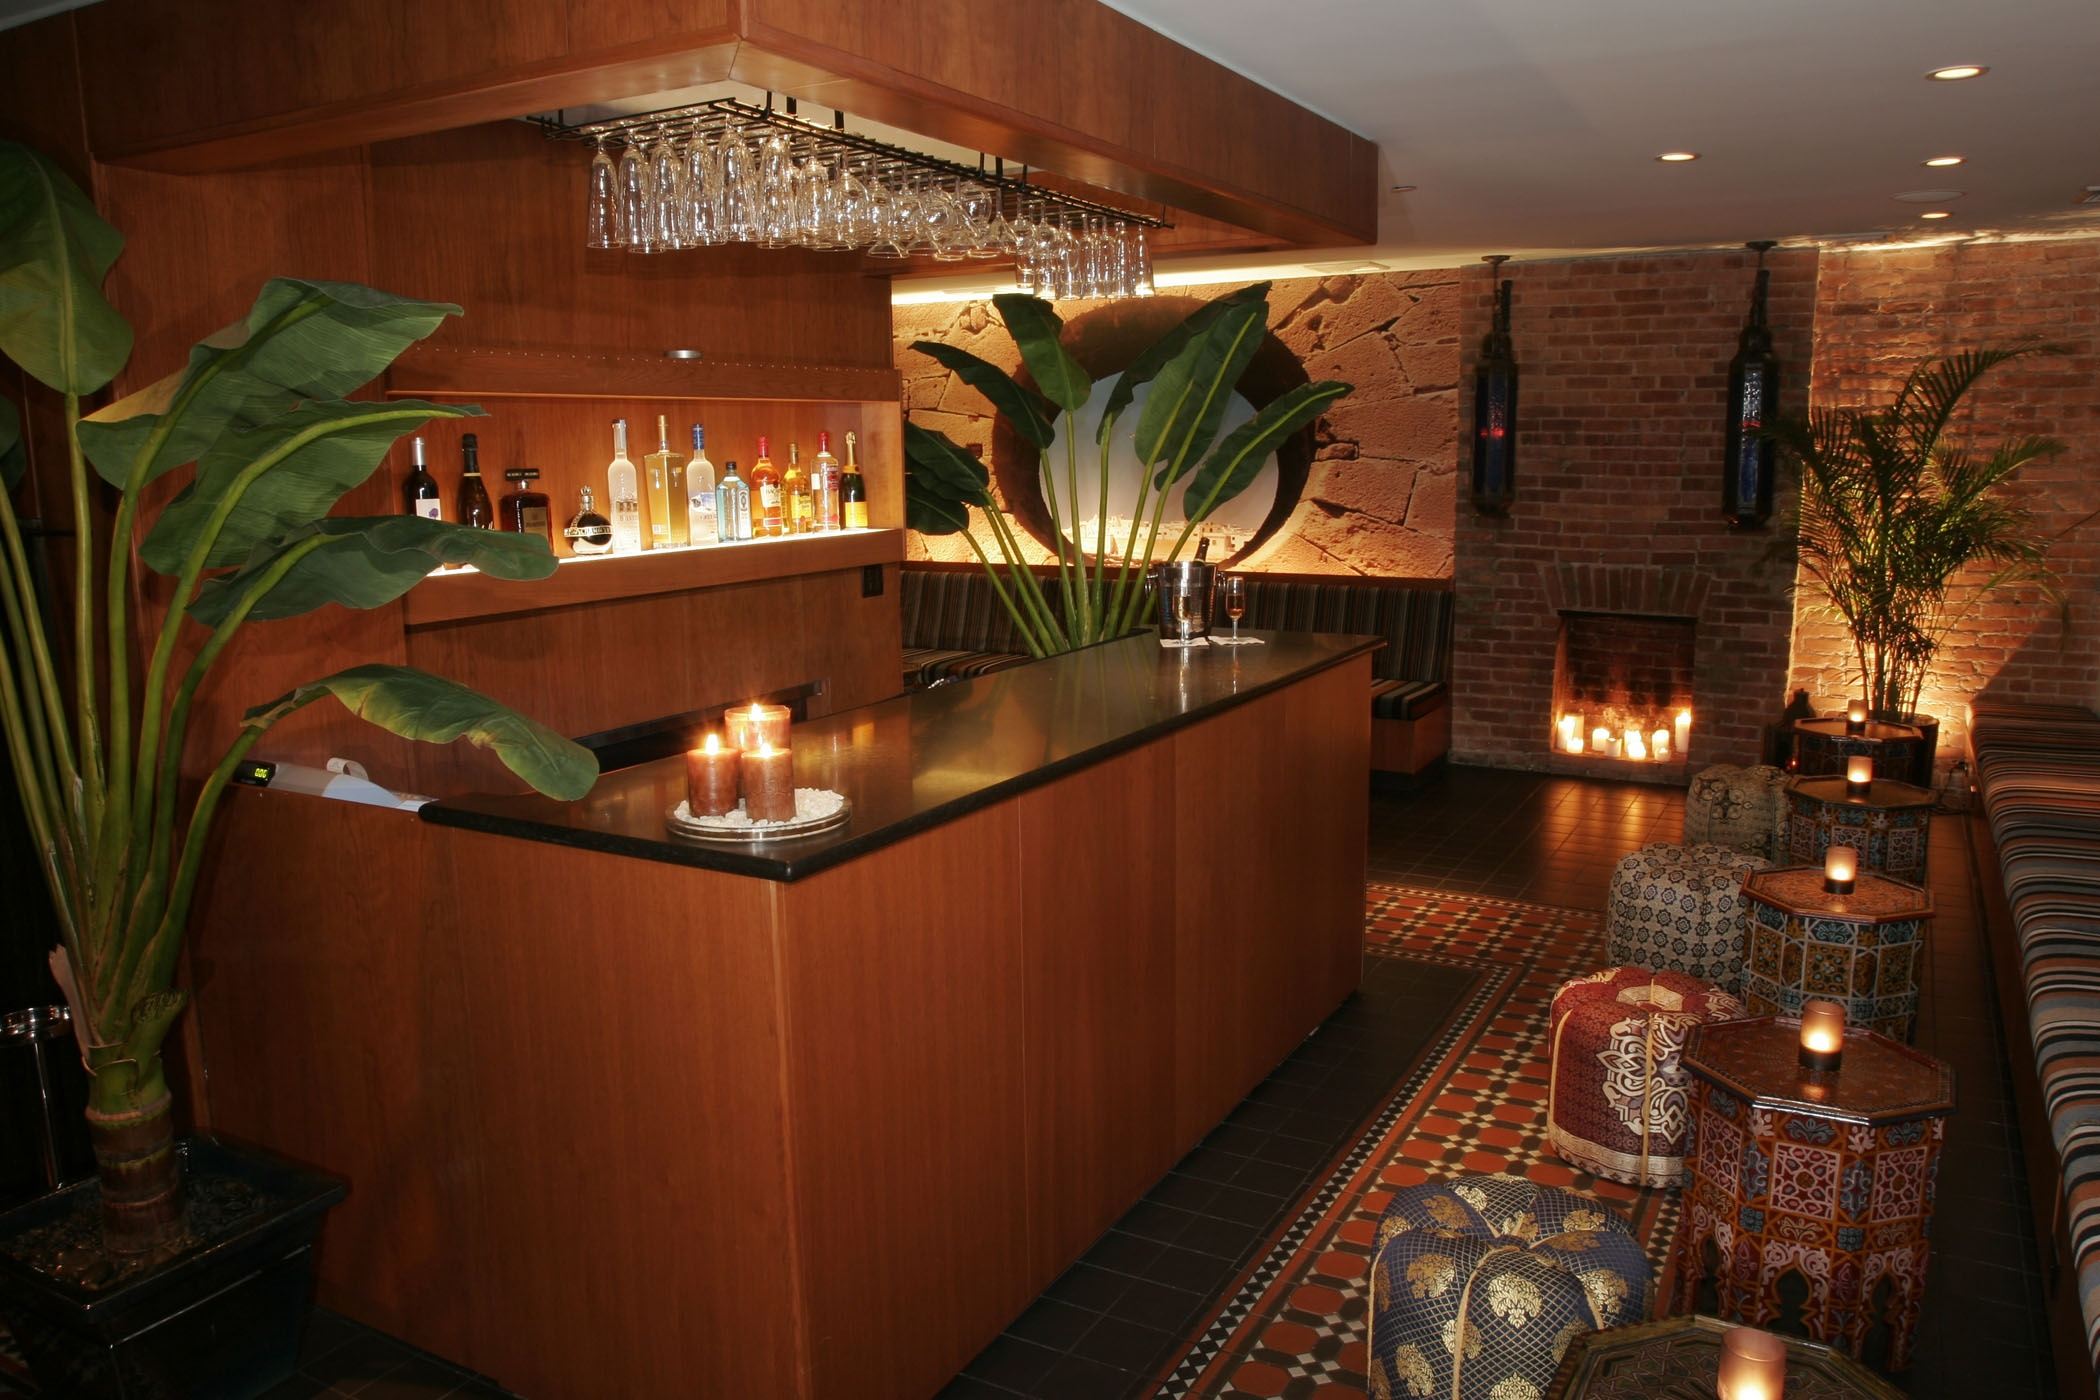 Kazbarkazbar A New Bar Lounge Serving Specialty Tails And Tapas Opens At The Marrakech Hotel Nyc Photo Business Wire